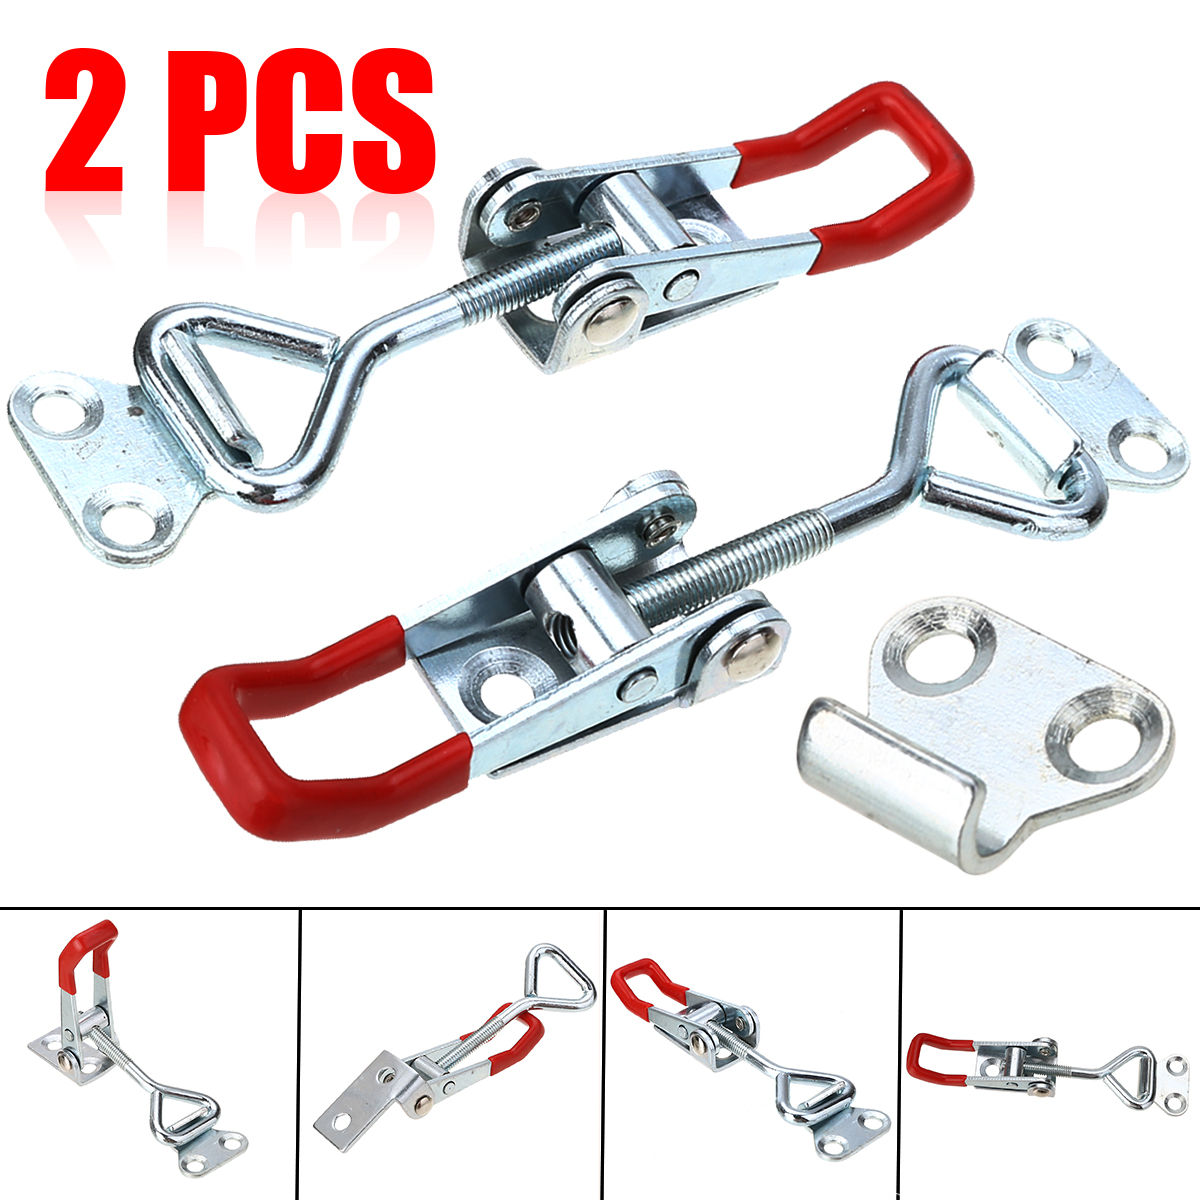 2pcs-toggle-clamp-horizontal-clamp-cabinet-boxes-lever-handle-toggle-latch-catch-lock-clamp-hasp-adjustable